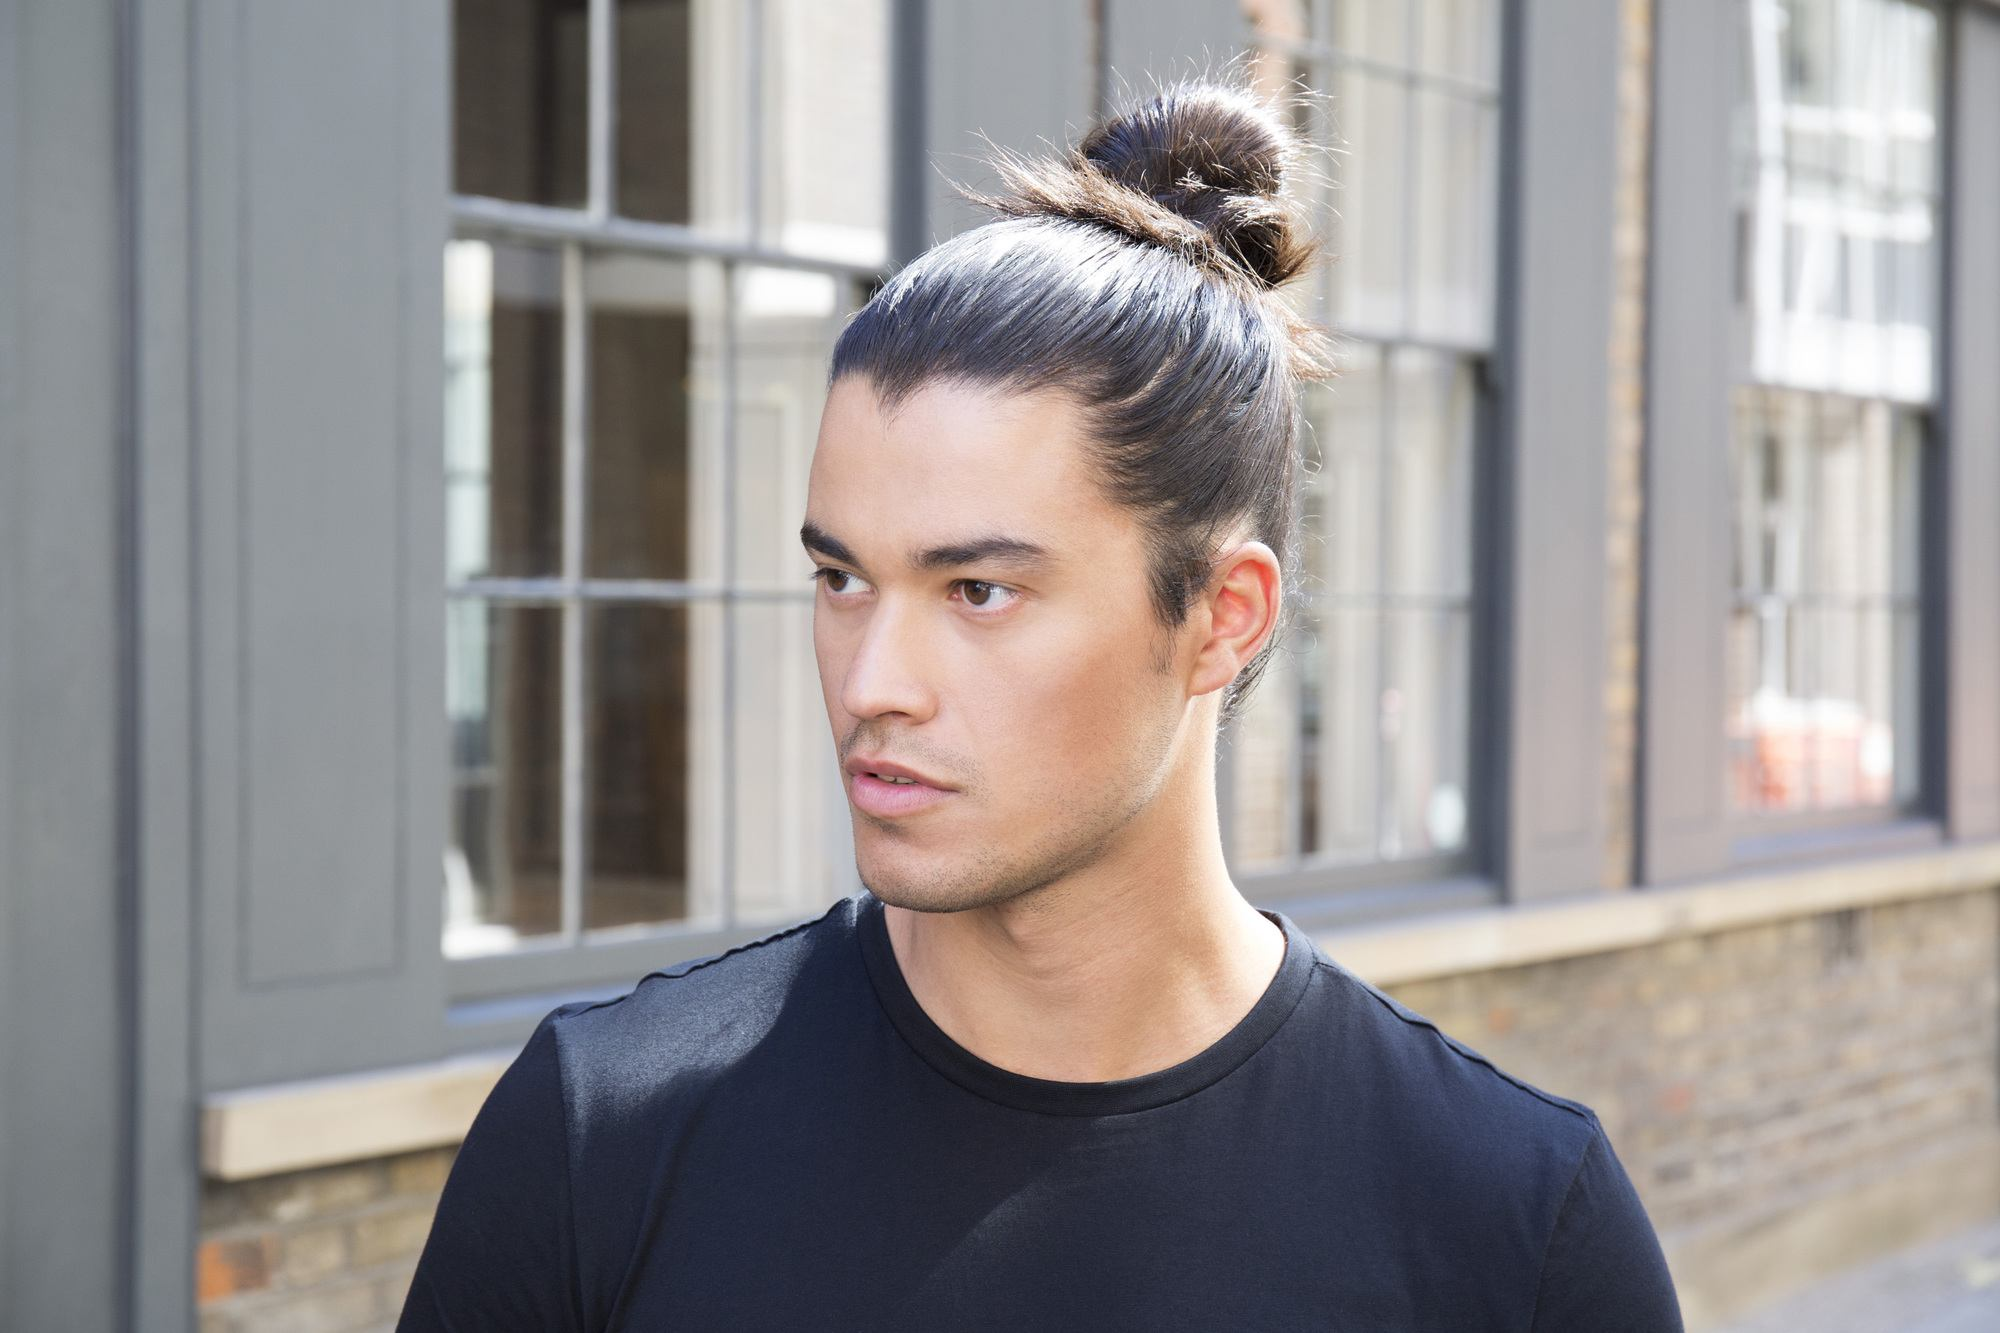 While there's no man bun … 4 Quick And Easy Ways To Tie A Man Bun At Home 2021 Update